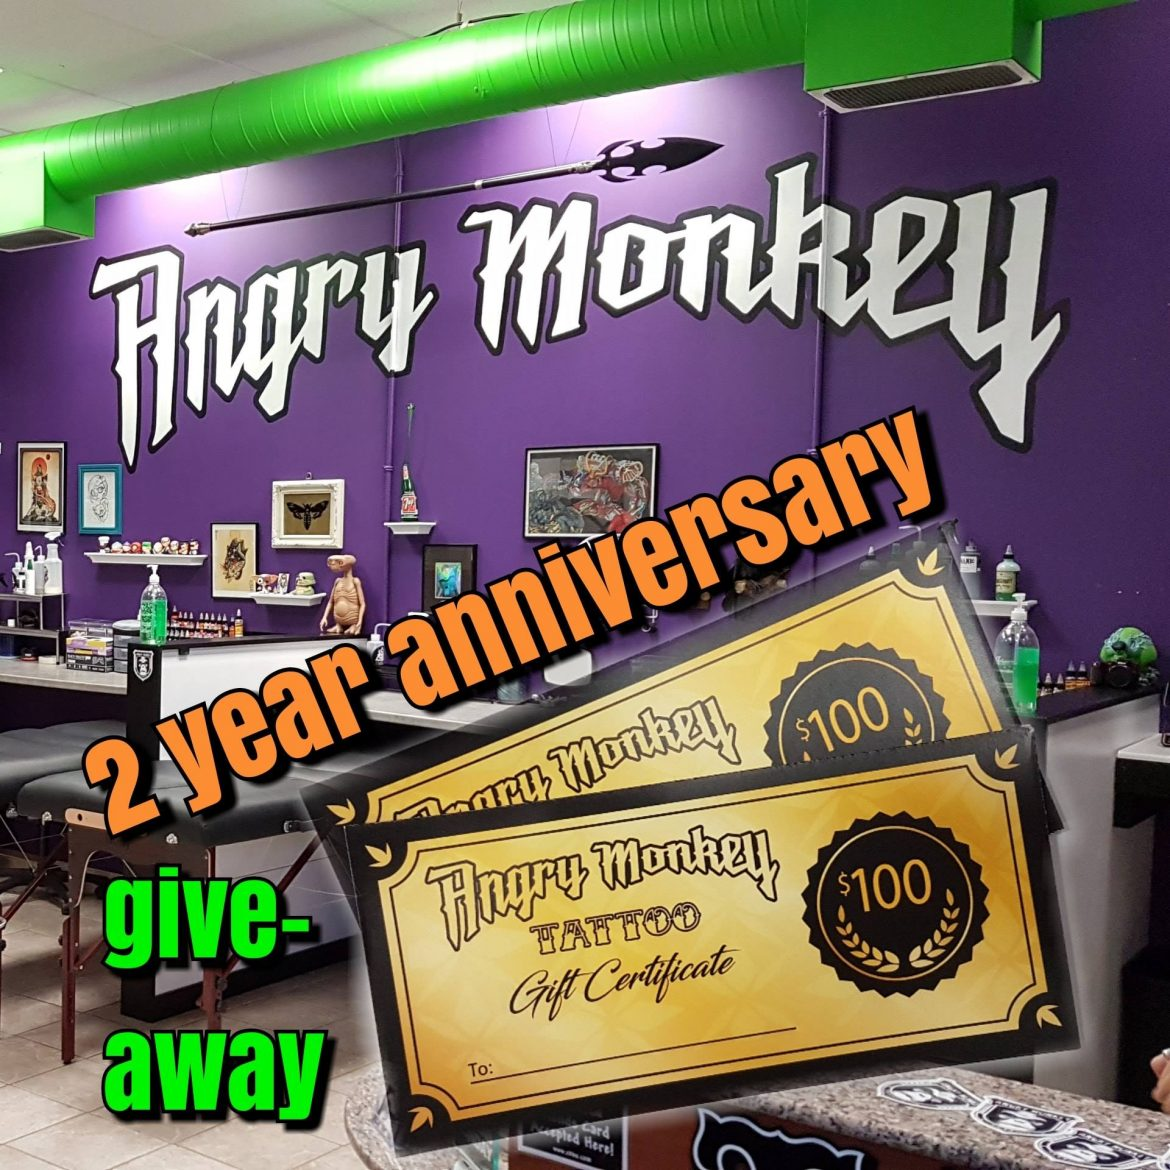 2 Year Anniversary Giveaway